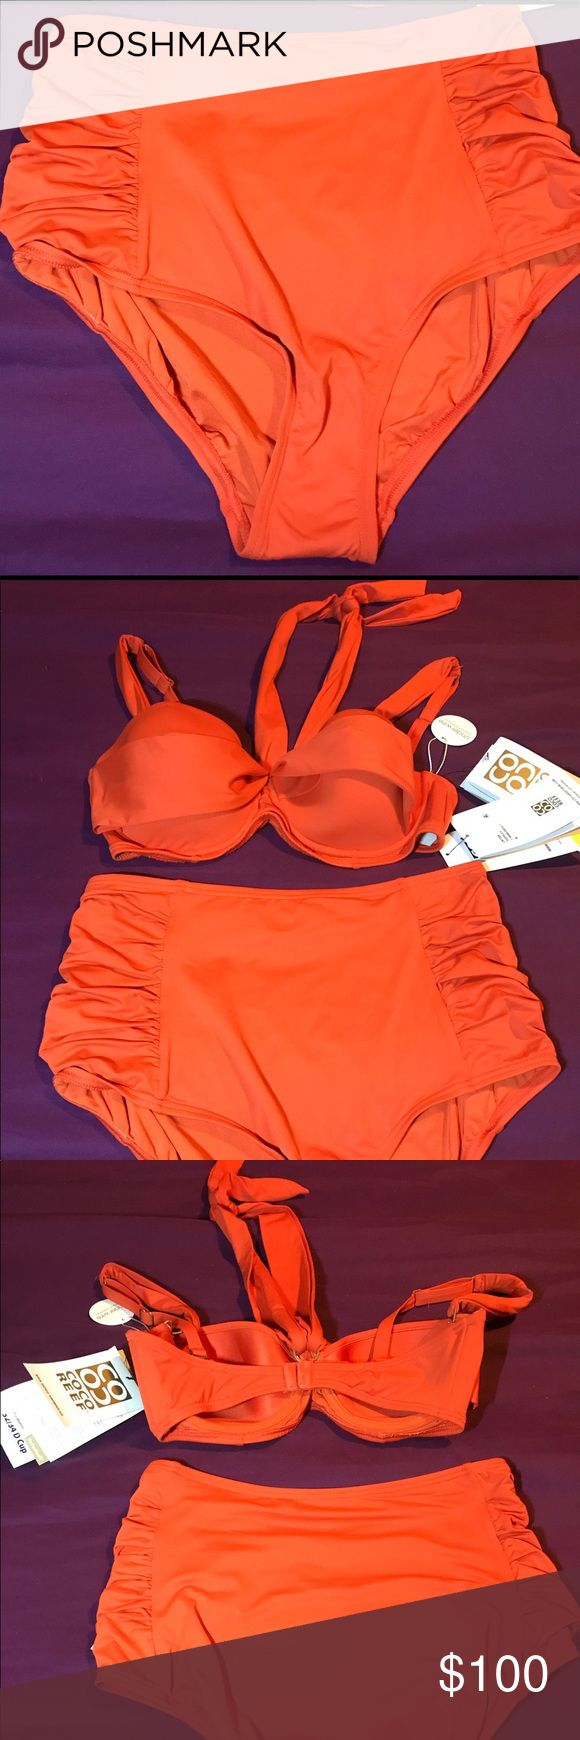 Coco reef perfectionFit bathing suit Brand new Coco Reef bra sized swimwear, underwire 2 piece bathing suit.. Top could be used in 4 different ways. Rich Orange. 32/34 D cup Coco Reef Swim Bikinis